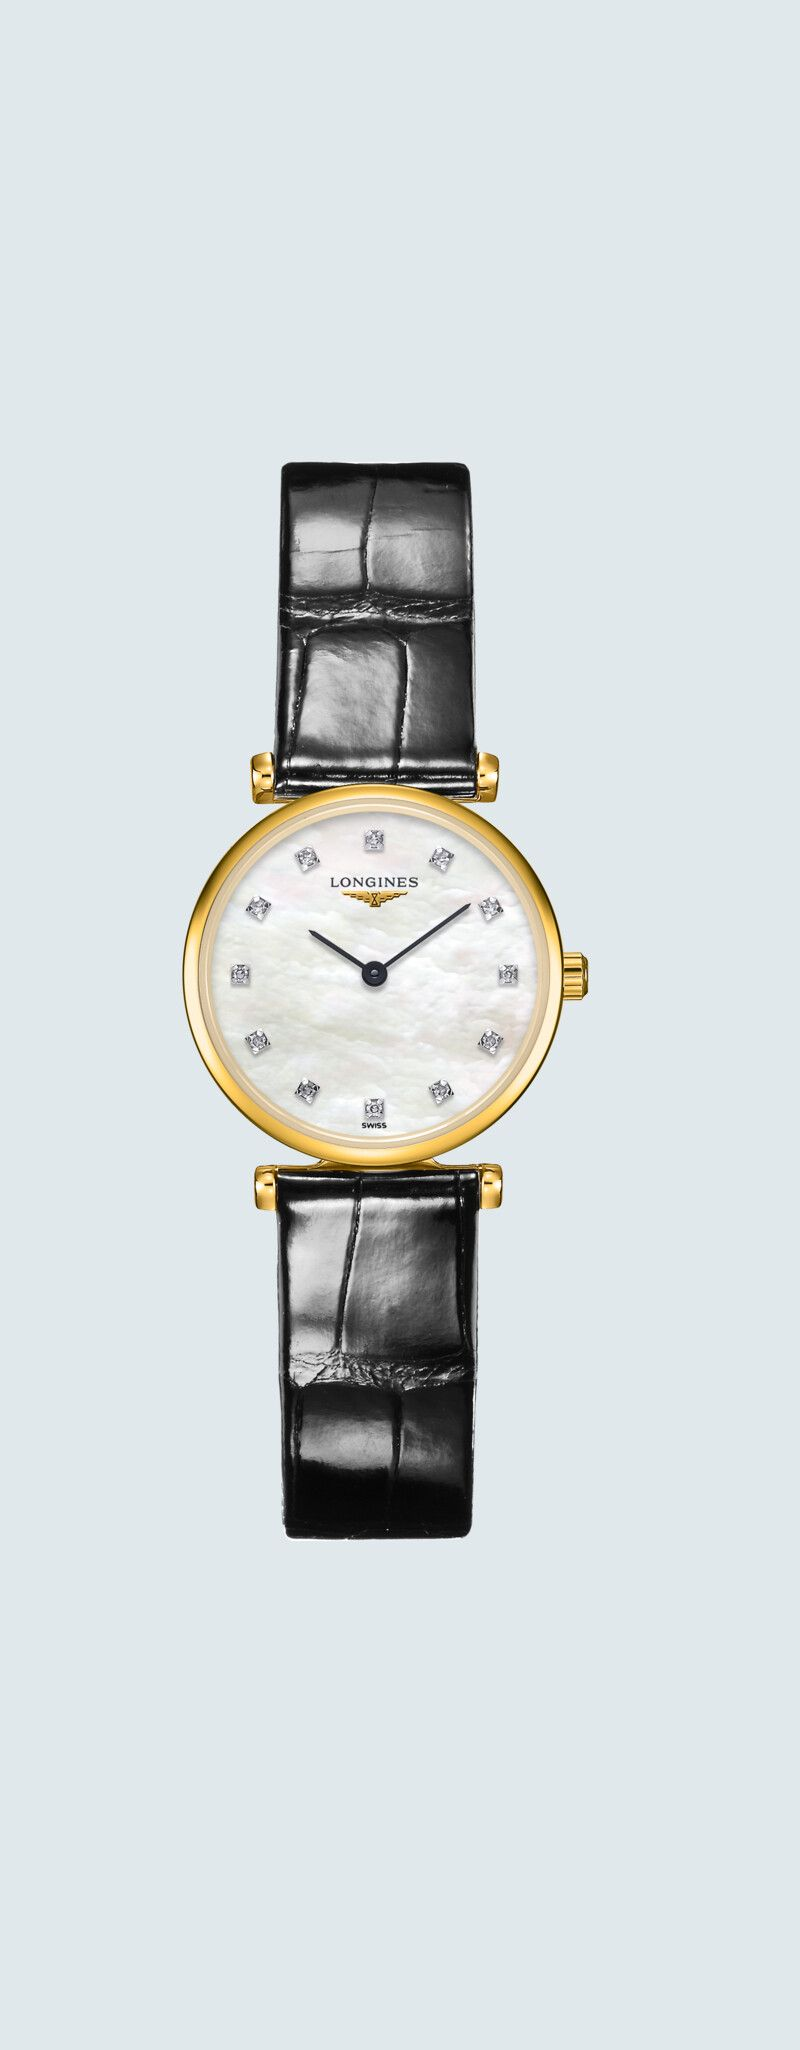 24.00 mm PVD jaune case with Nacre blanche dial and Bracelet Alligator Noir strap - case zoom view